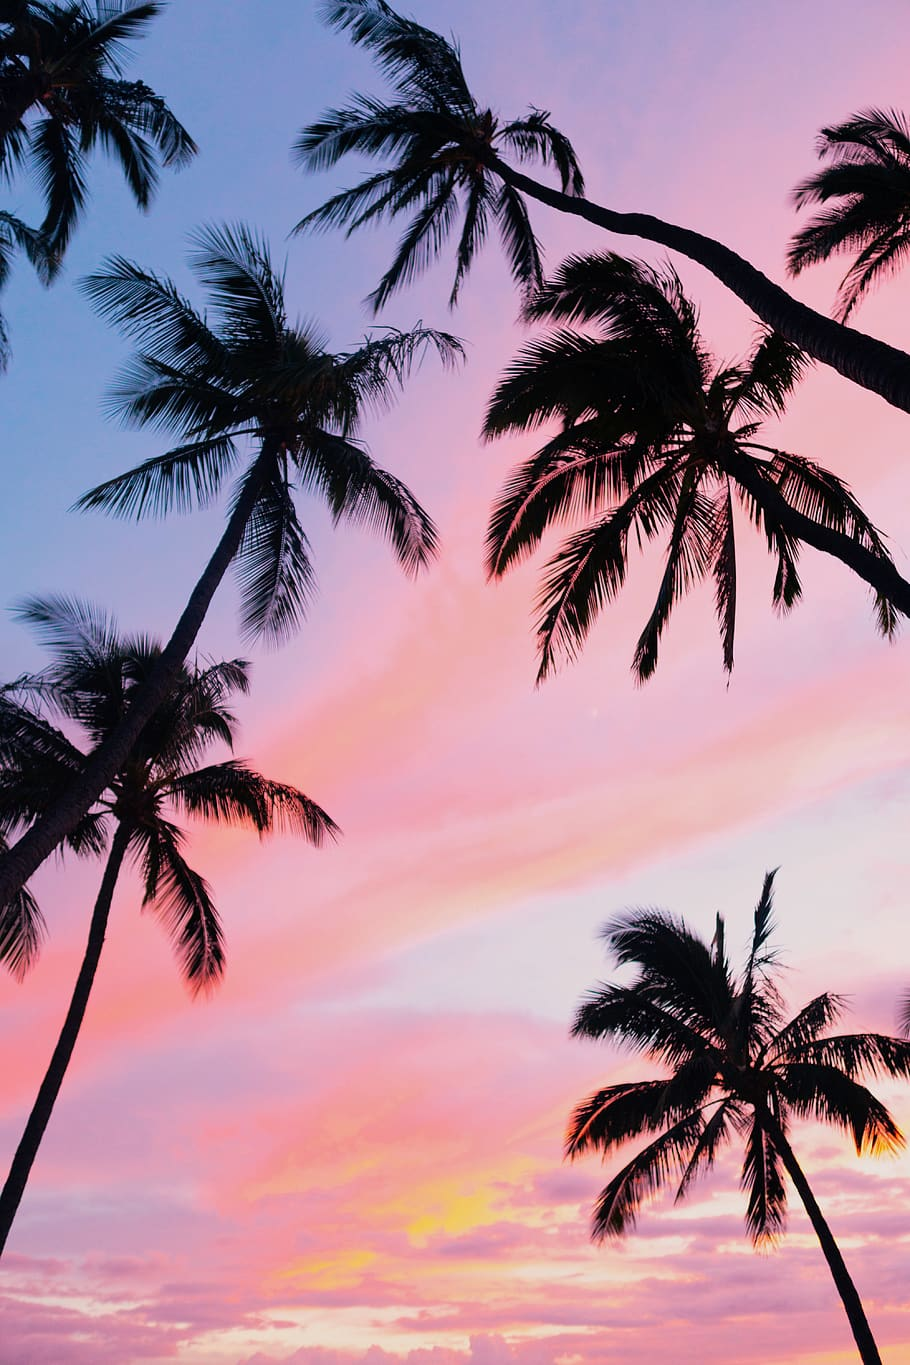 Sky, Pink, Sunset, Hawaii, Tropical, Palm Tree, Tropical - Palm Tree Iphone Background - HD Wallpaper